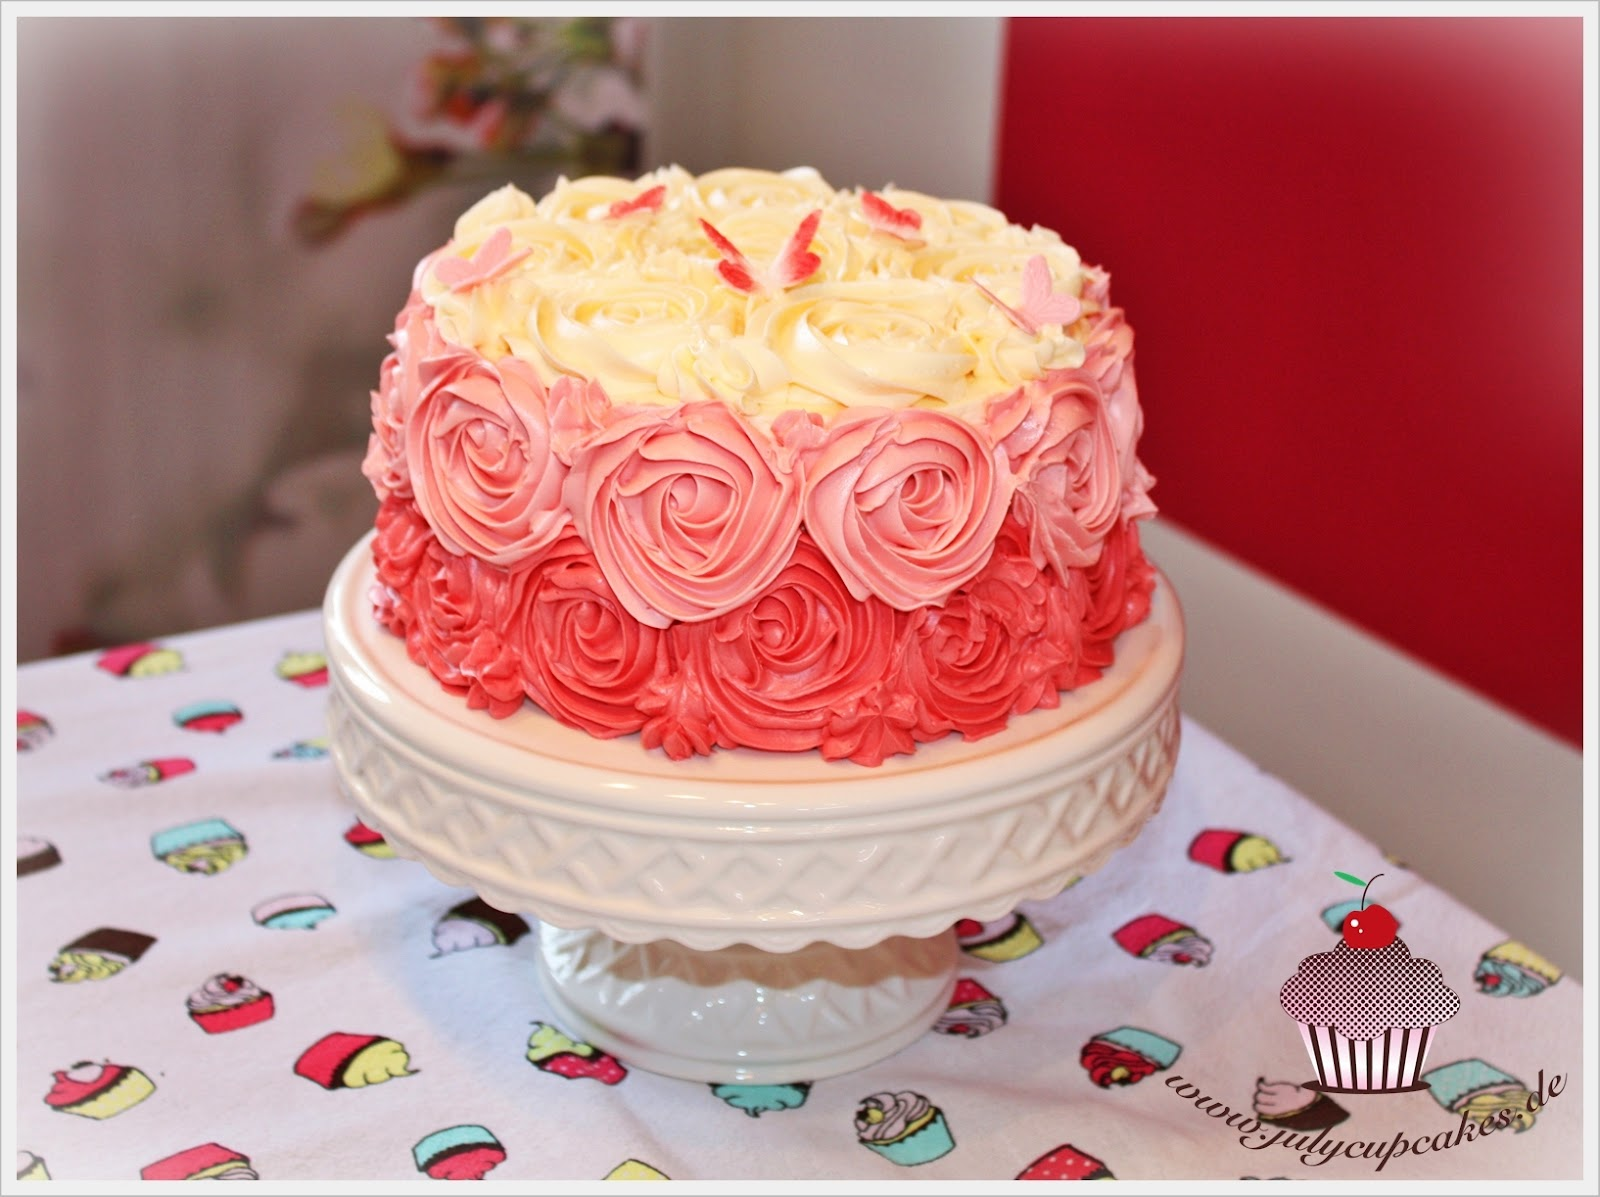 ... Cupcakes and Cakes World: RED VELVET CAKE WITH CREAM CHEESE FROSTING